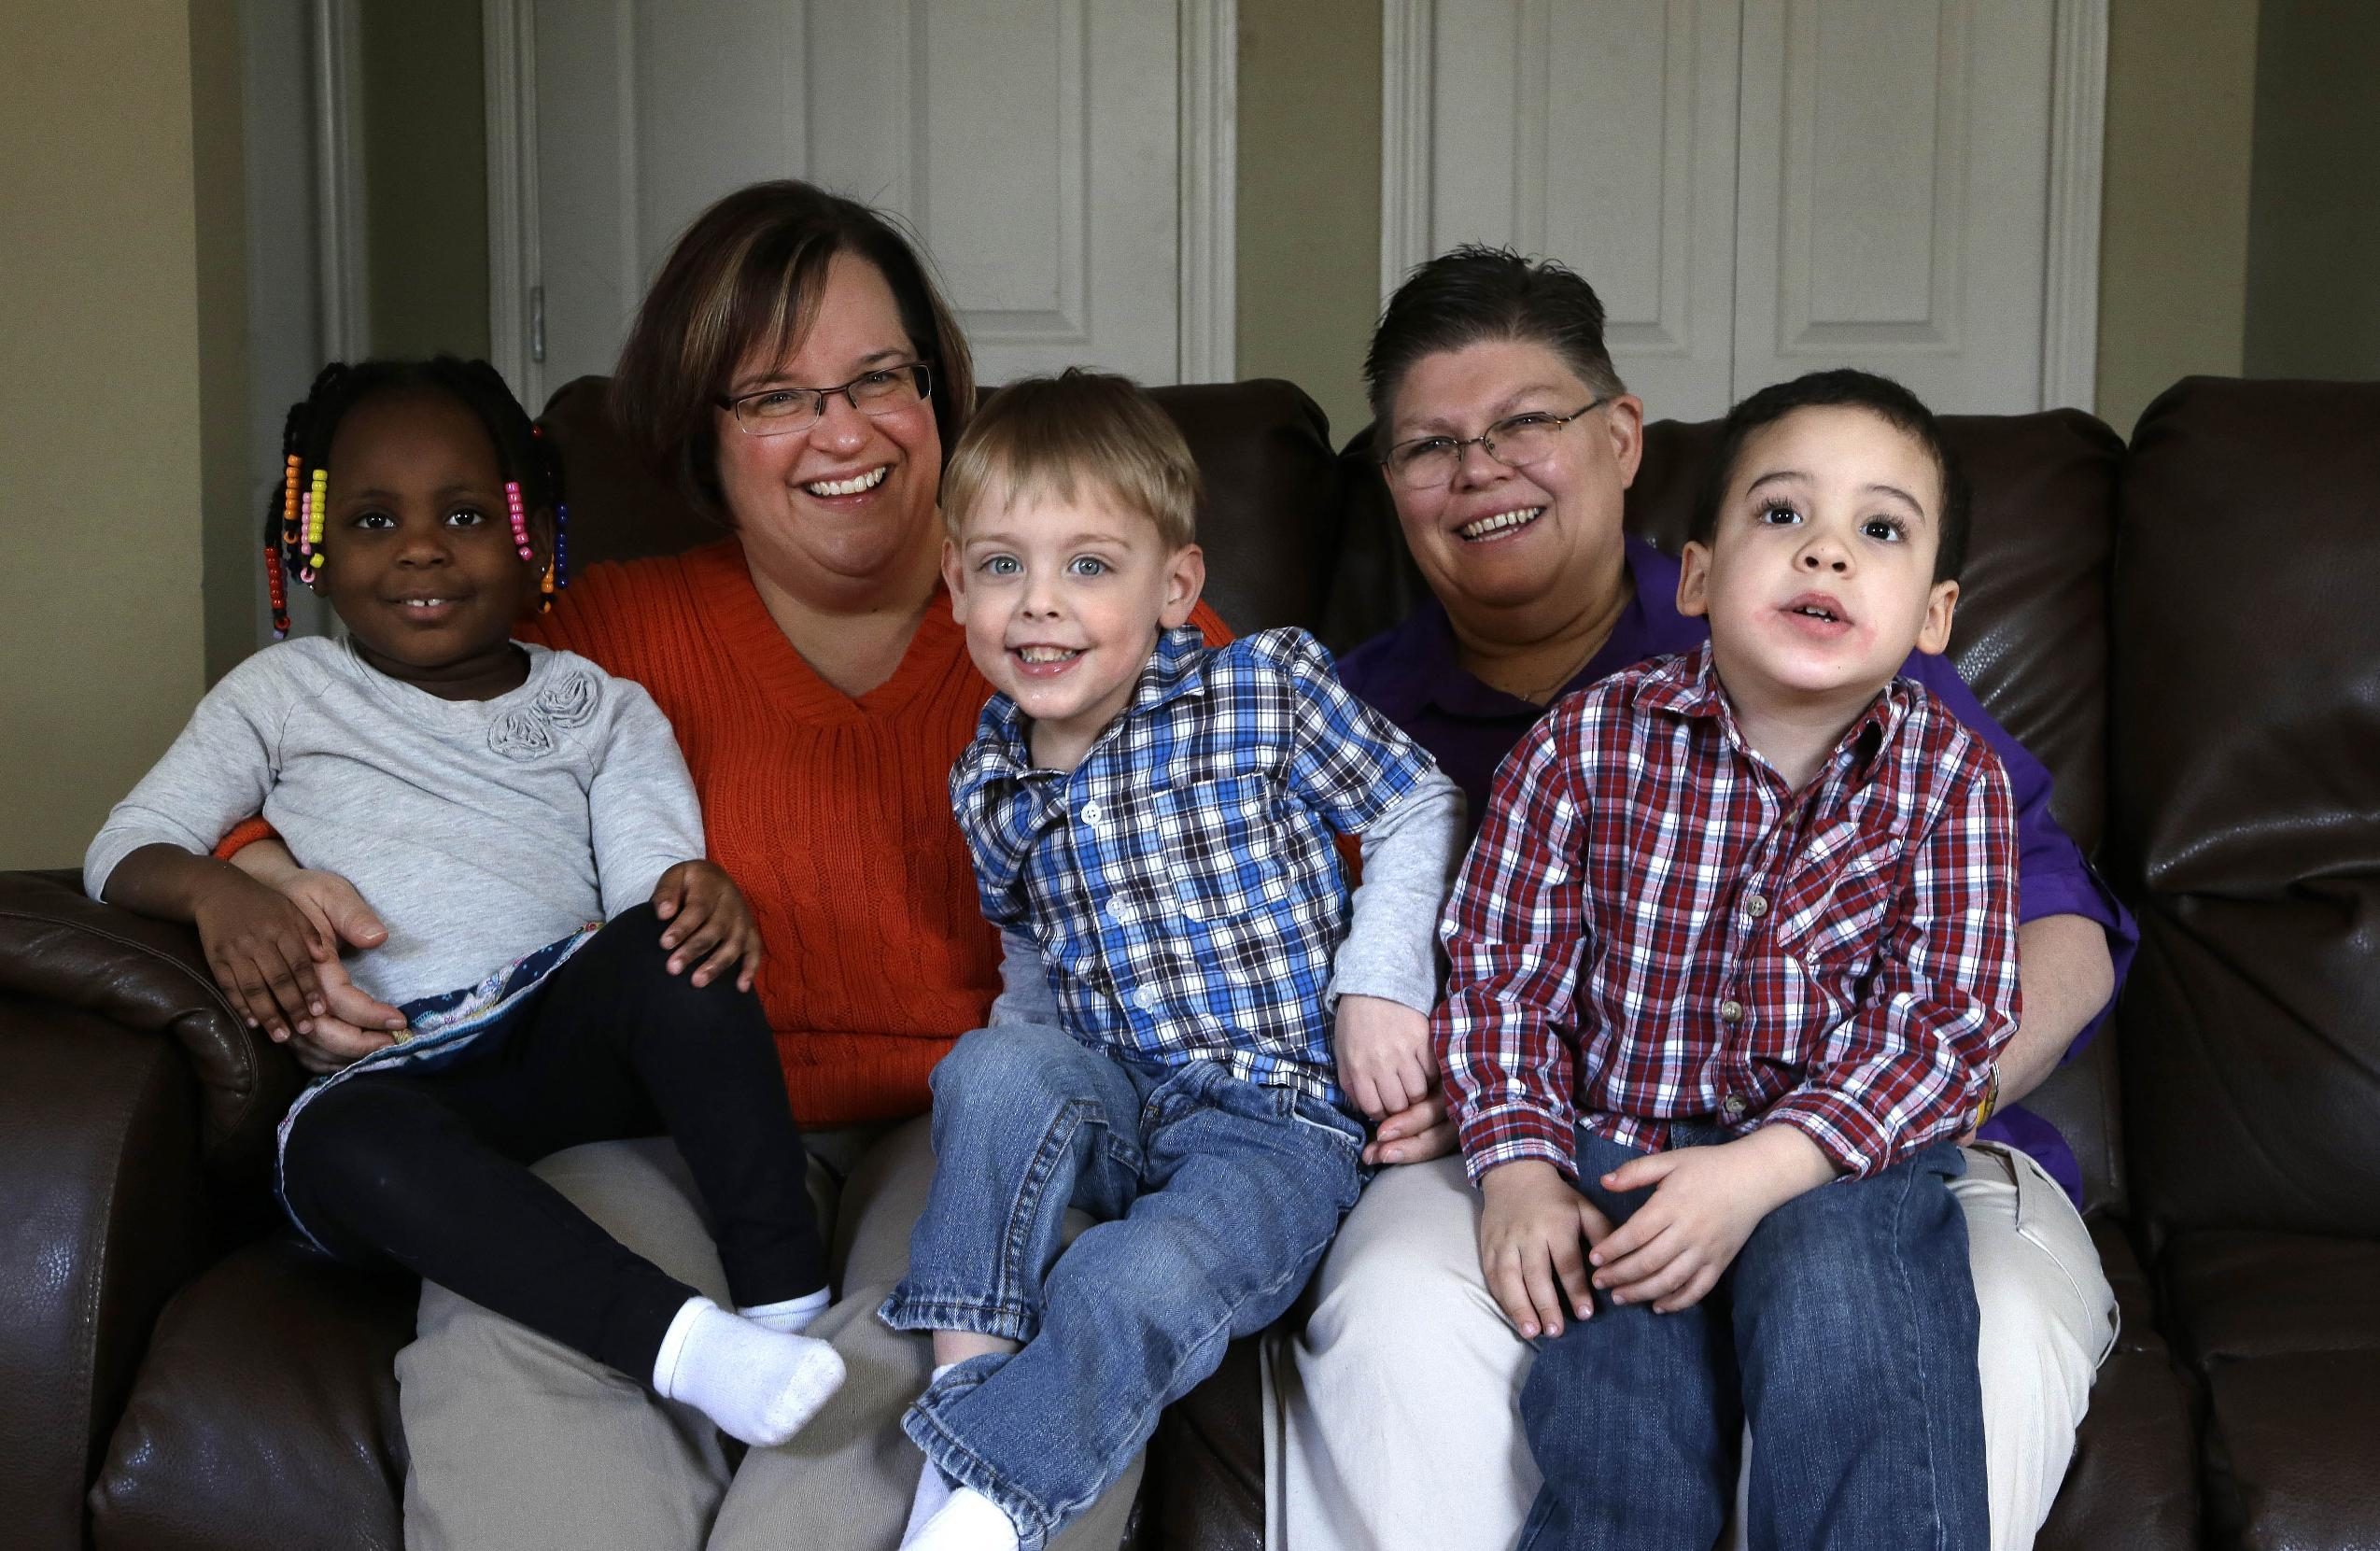 April DeBoer, second from left, sits with her adopted daughter Ryanne, 3, left, and Jayne Rowse, fourth from left, and her adopted sons Jacob, 3, middle, and Nolan, 4, right, at their home in Hazel Park, Tuesday, March 5, 2013. The lesbian couple's desire to adopt each other's children has grown into a potentially ground-breaking challenge to Michigan's ban on same-sex marriage. The two Detroit-area nurses filed a lawsuit to try to overturn restrictions on adoption by same-sex partners. But at the judge's invitation, the case has taken an extraordinary turn and now will test the legality of a 2004 constitutional amendment that says only marriage of a man and woman is recognized in Michigan. (AP Photo/Paul Sancya)